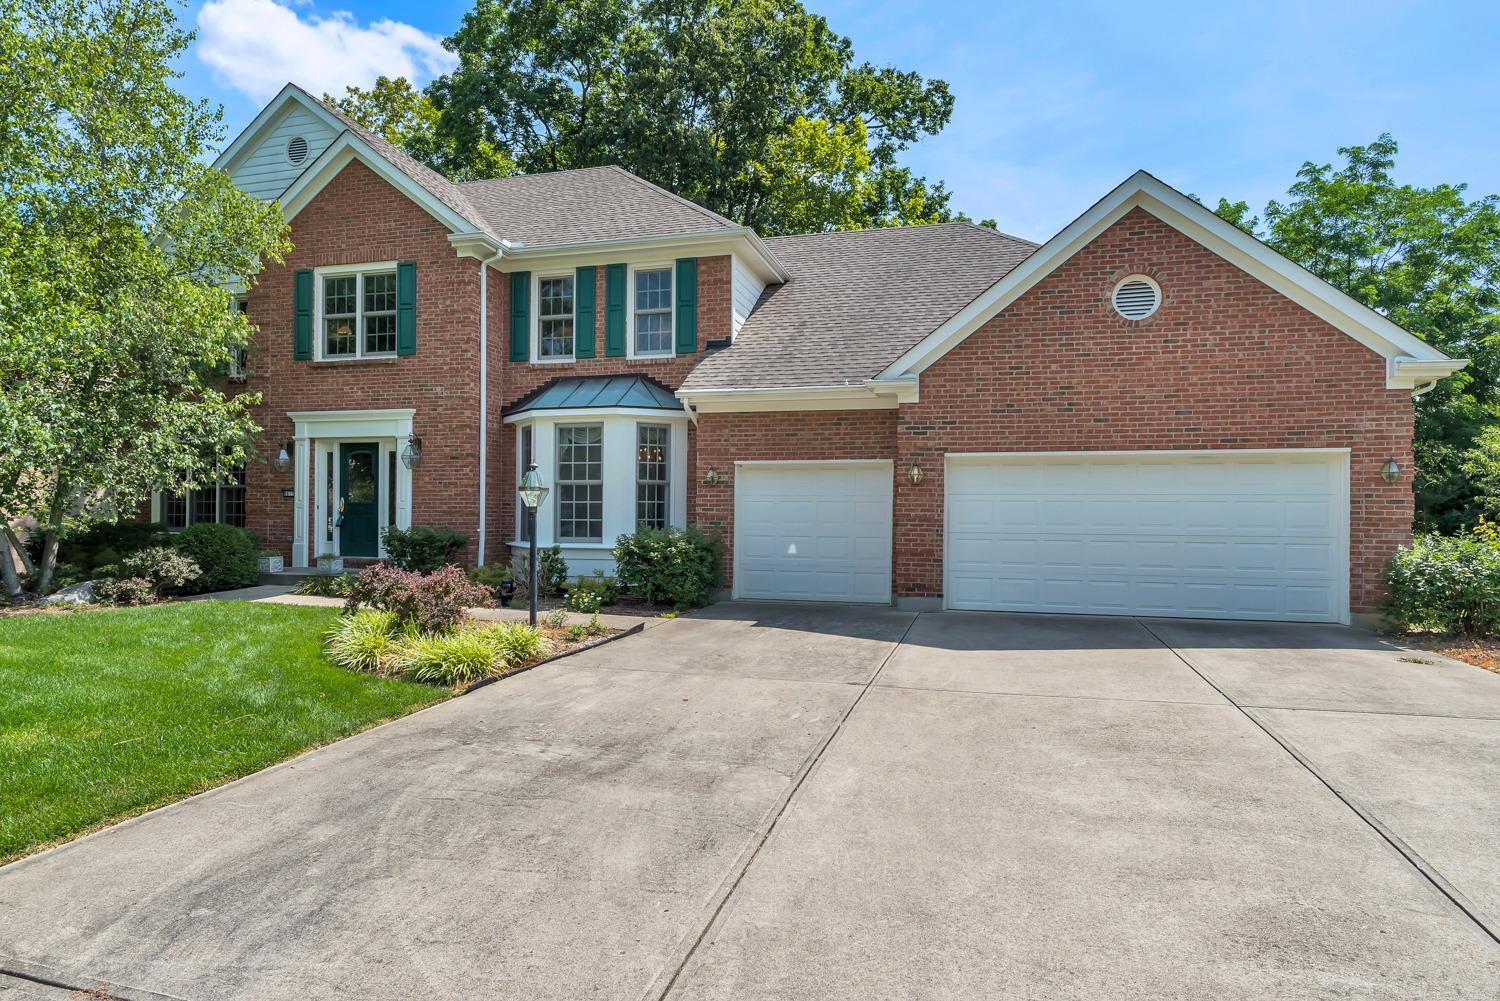 6625 Ridgeview Court, Miami Twp, OH 45140